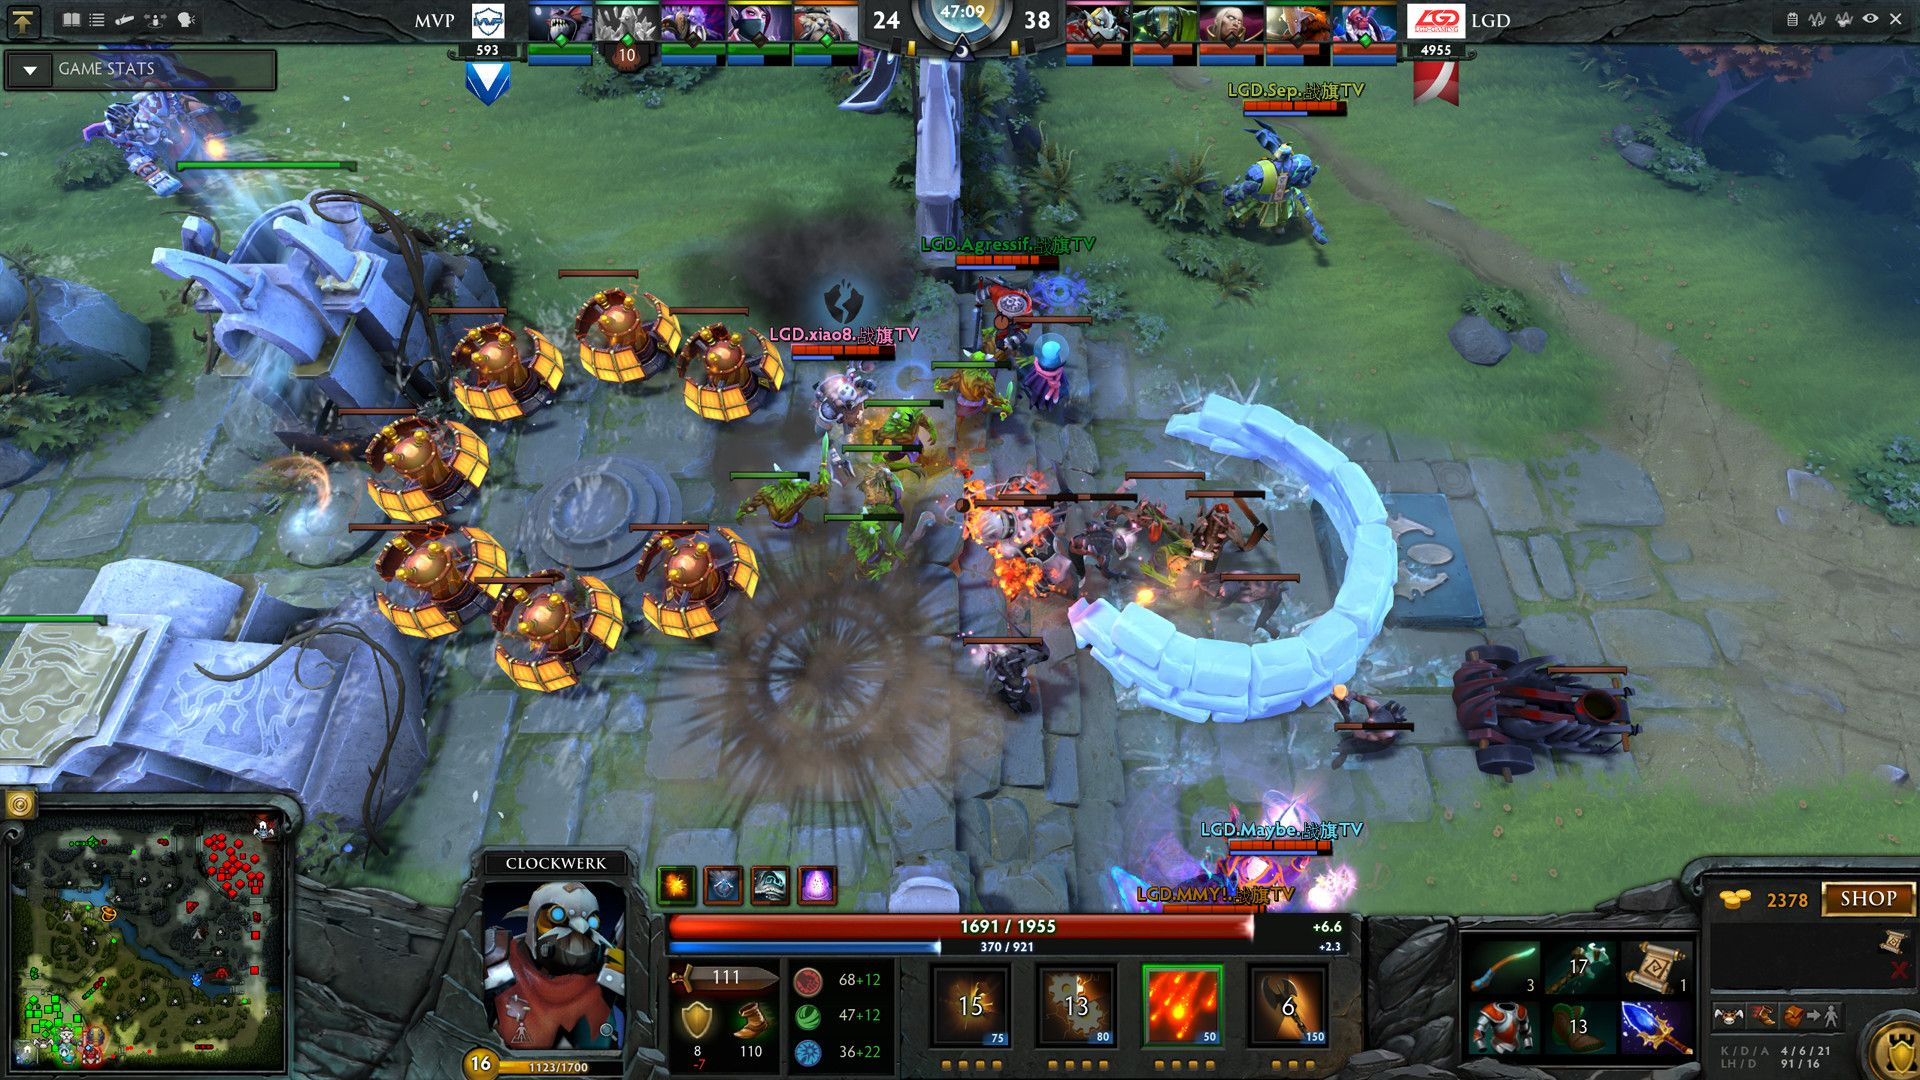 Valve is trying to end account smurfing in 'Dota 2' Valve is